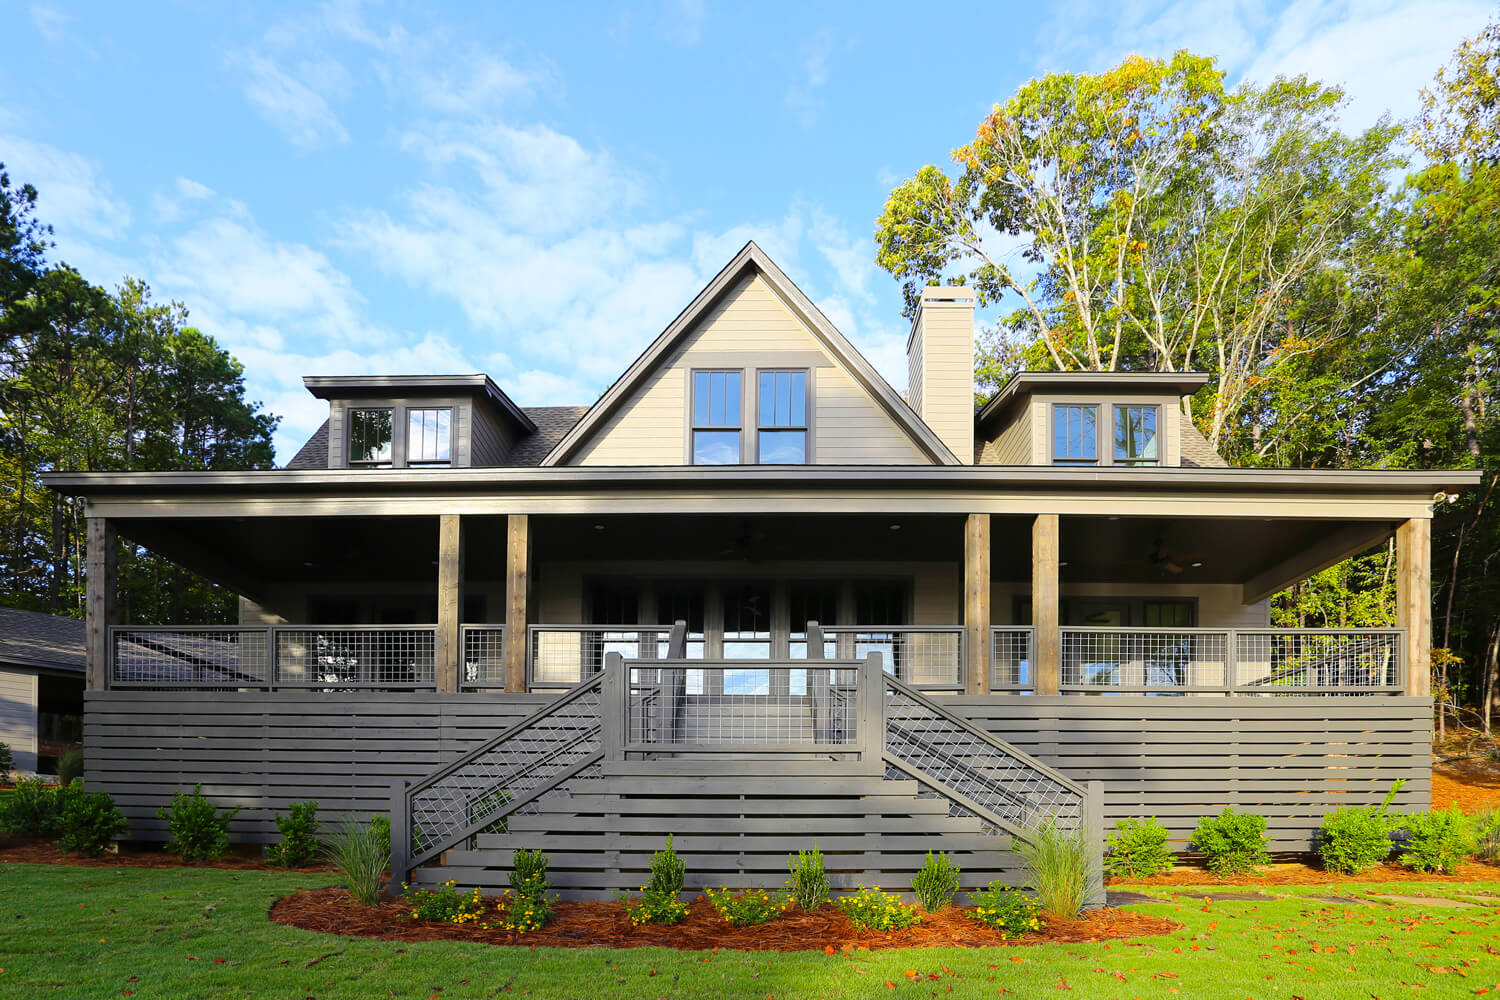 Lake House - Front Porch - Designed by Foshee Architecture